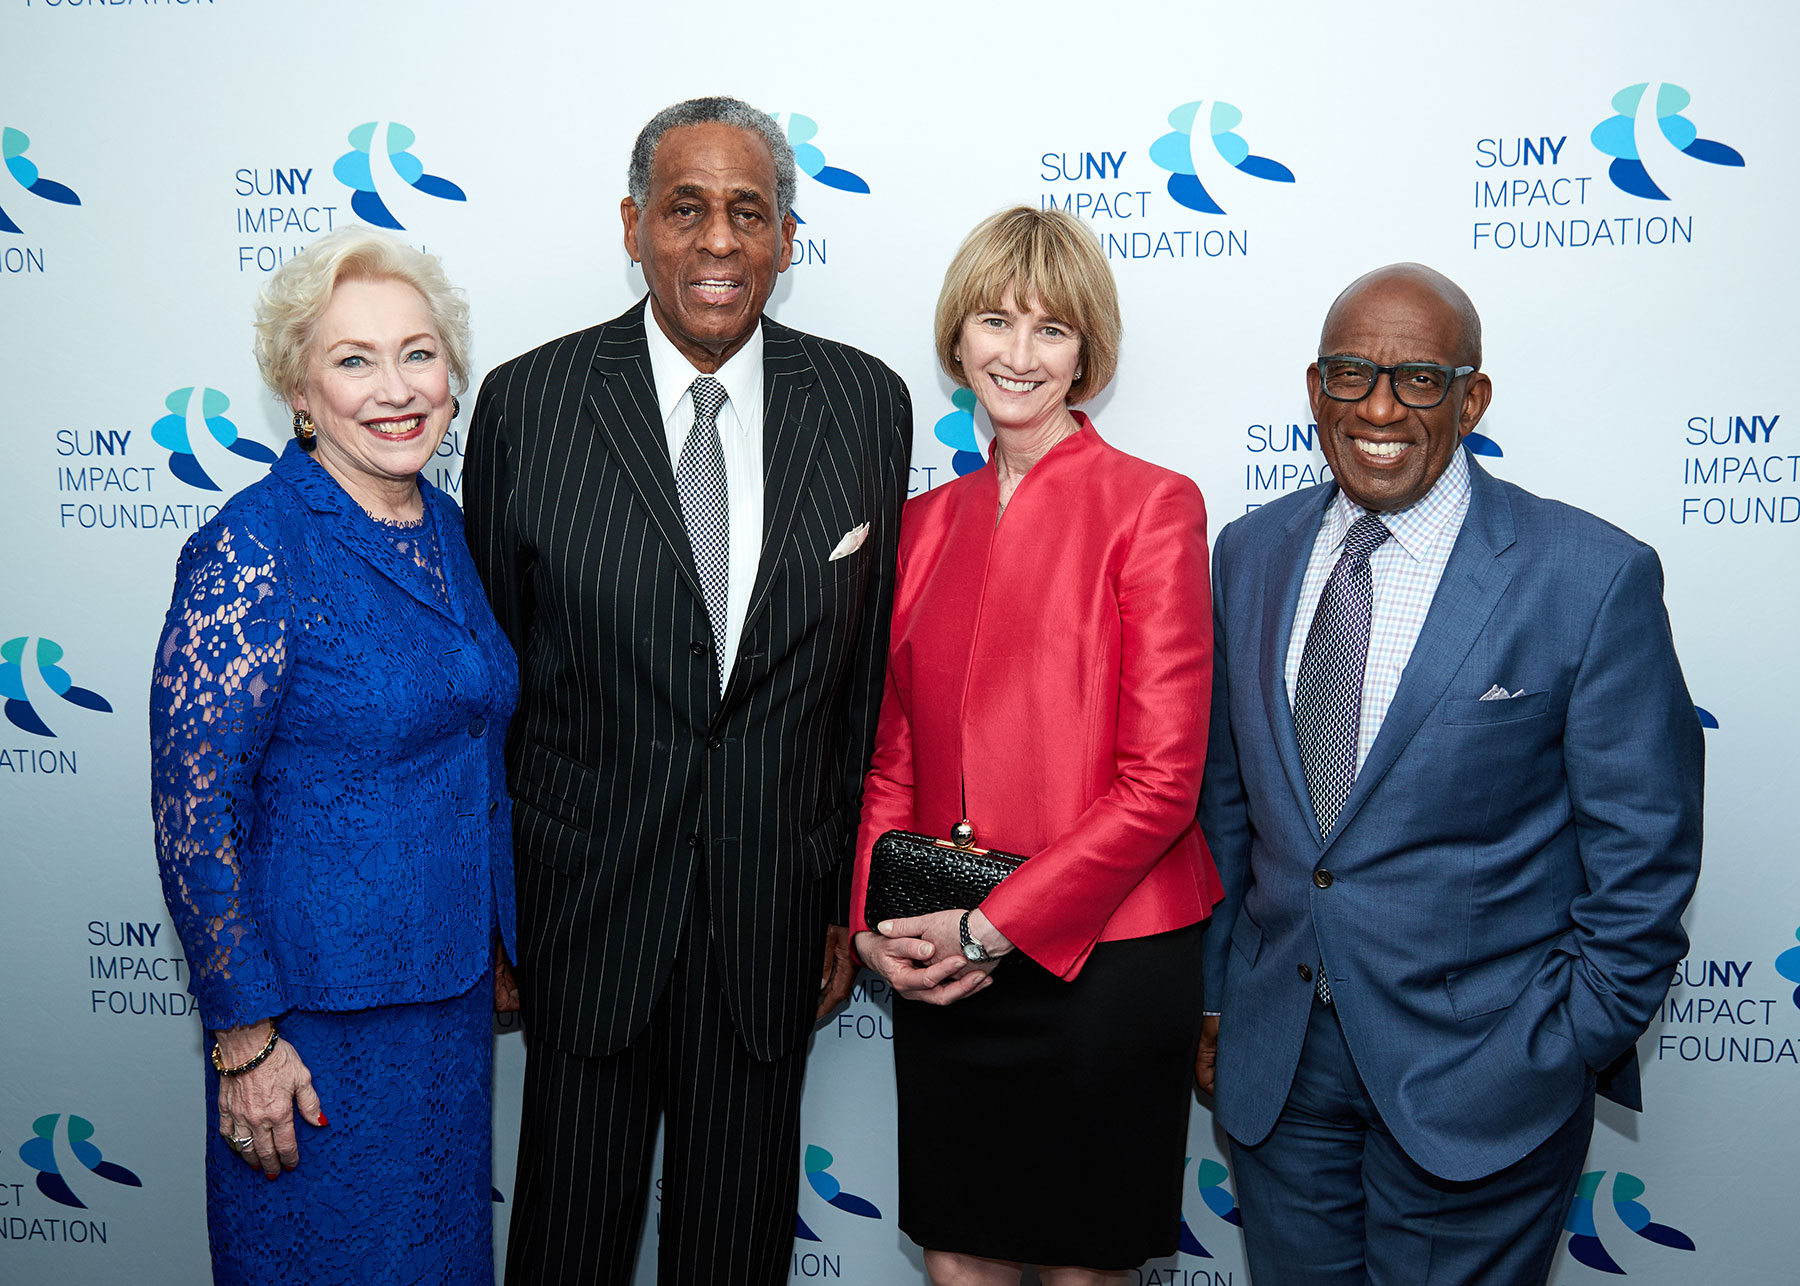 Chancellor Zimpher, Carl McCall, Kristina M Johnson, and Al Roker pose for the camera at the EOP 50th Anniversary Benefit dinner.